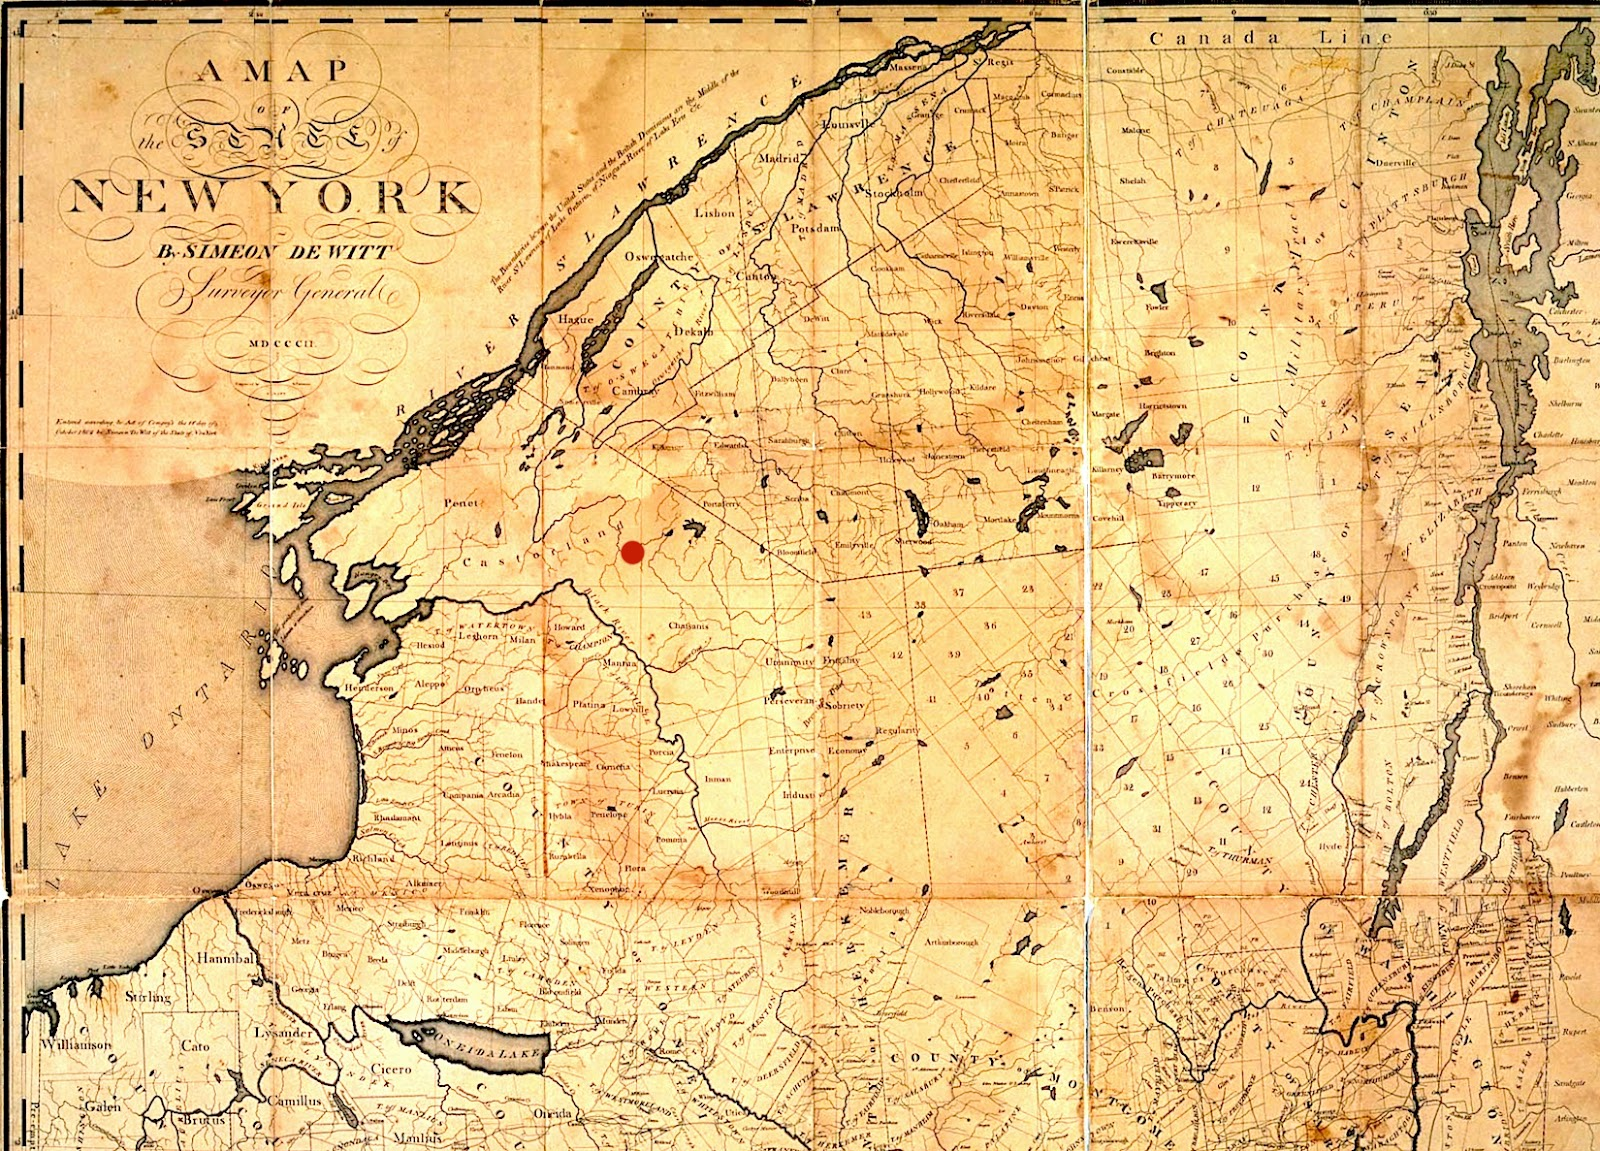 1802 new york map with castorland wilna is the red dot